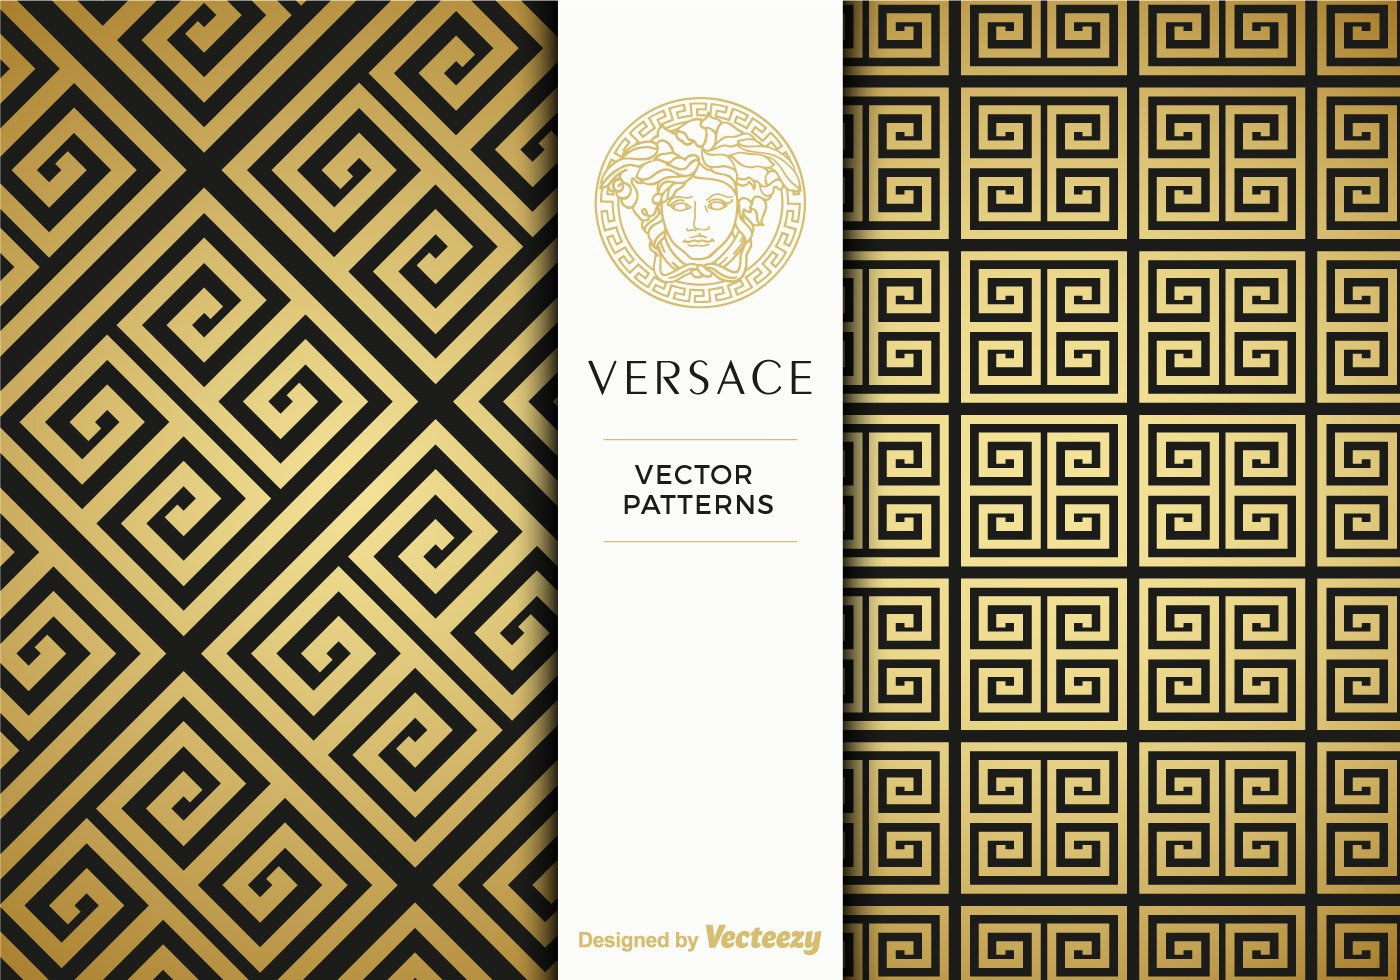 Greek Key Pattern Template Inspirational Free Versace Golden Vector Patterns Download Free Vector